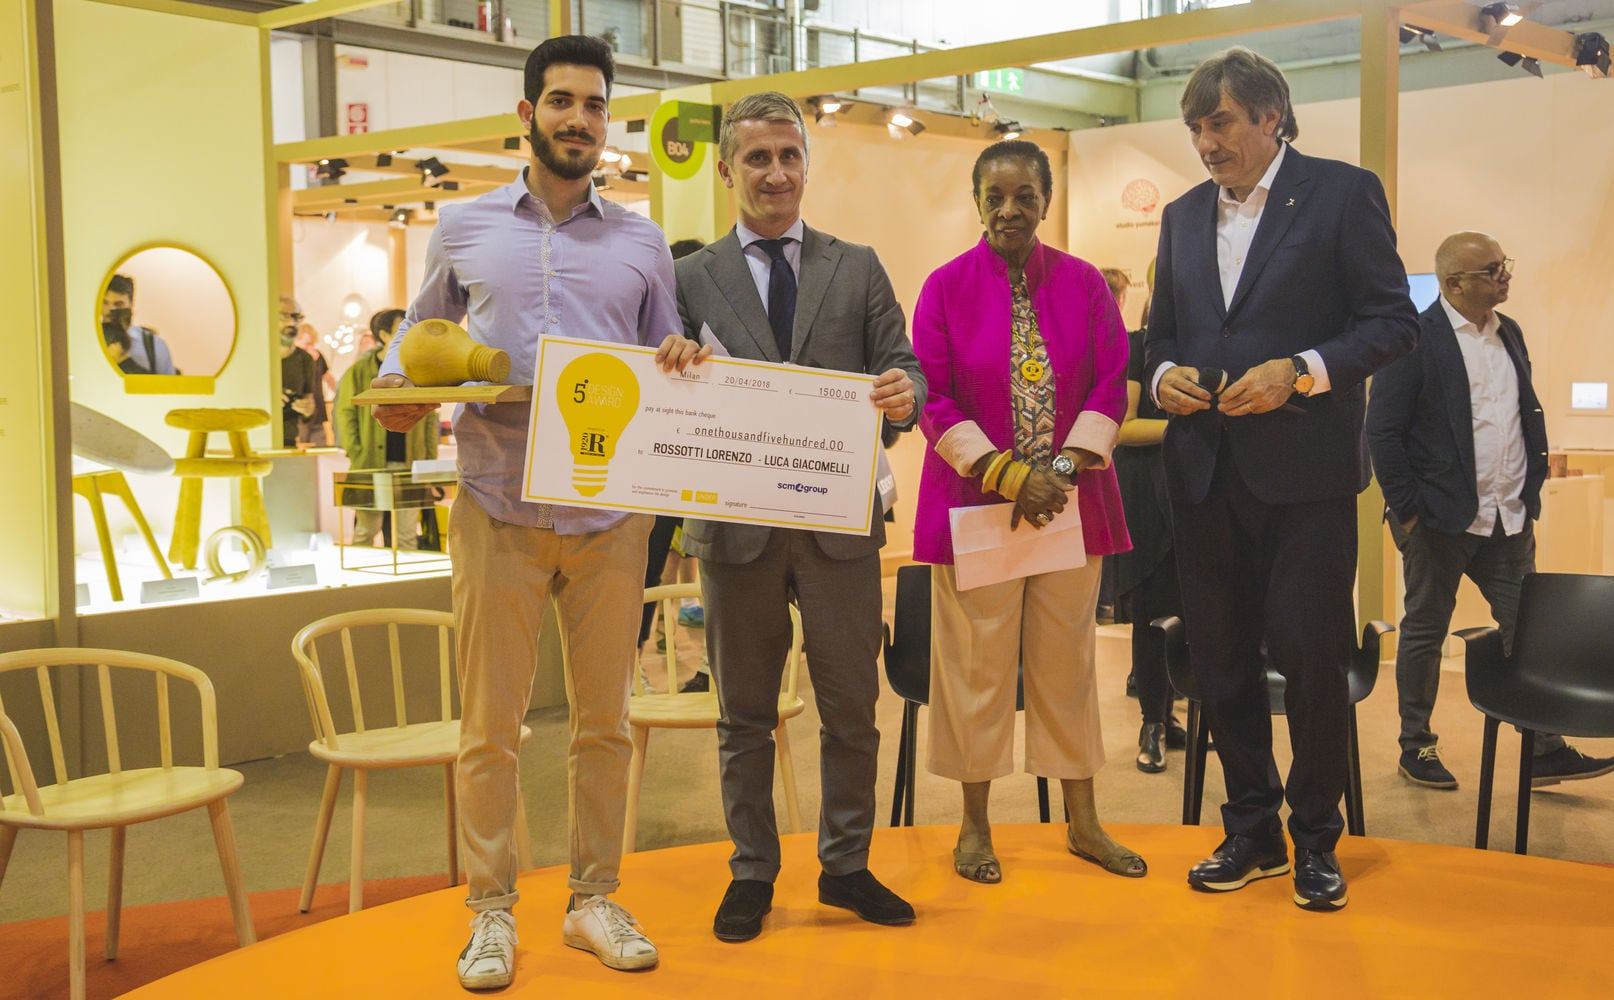 SCM at the Salone del Mobile to award top rising designers